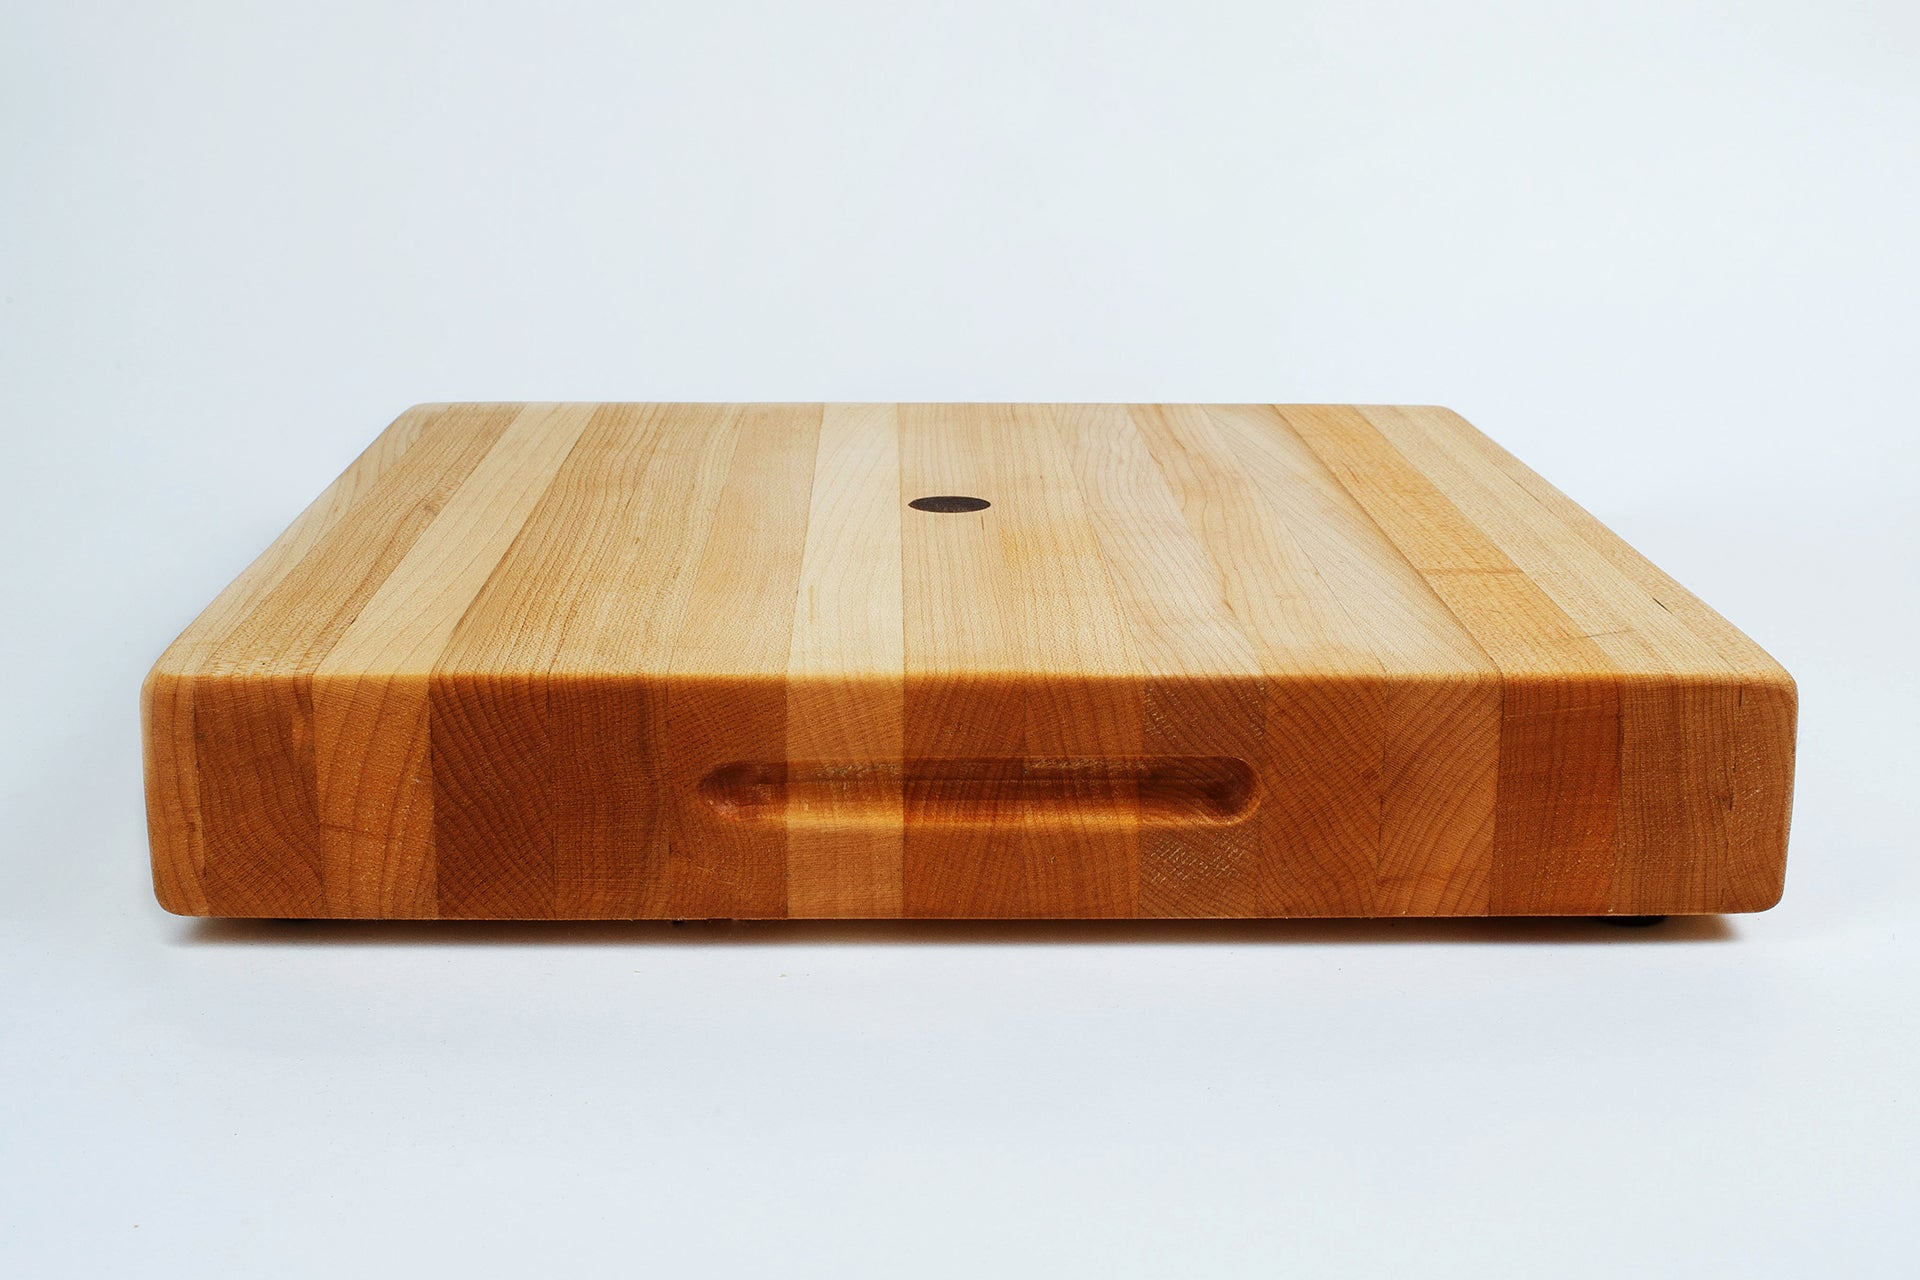 The Chop Cutting Board*